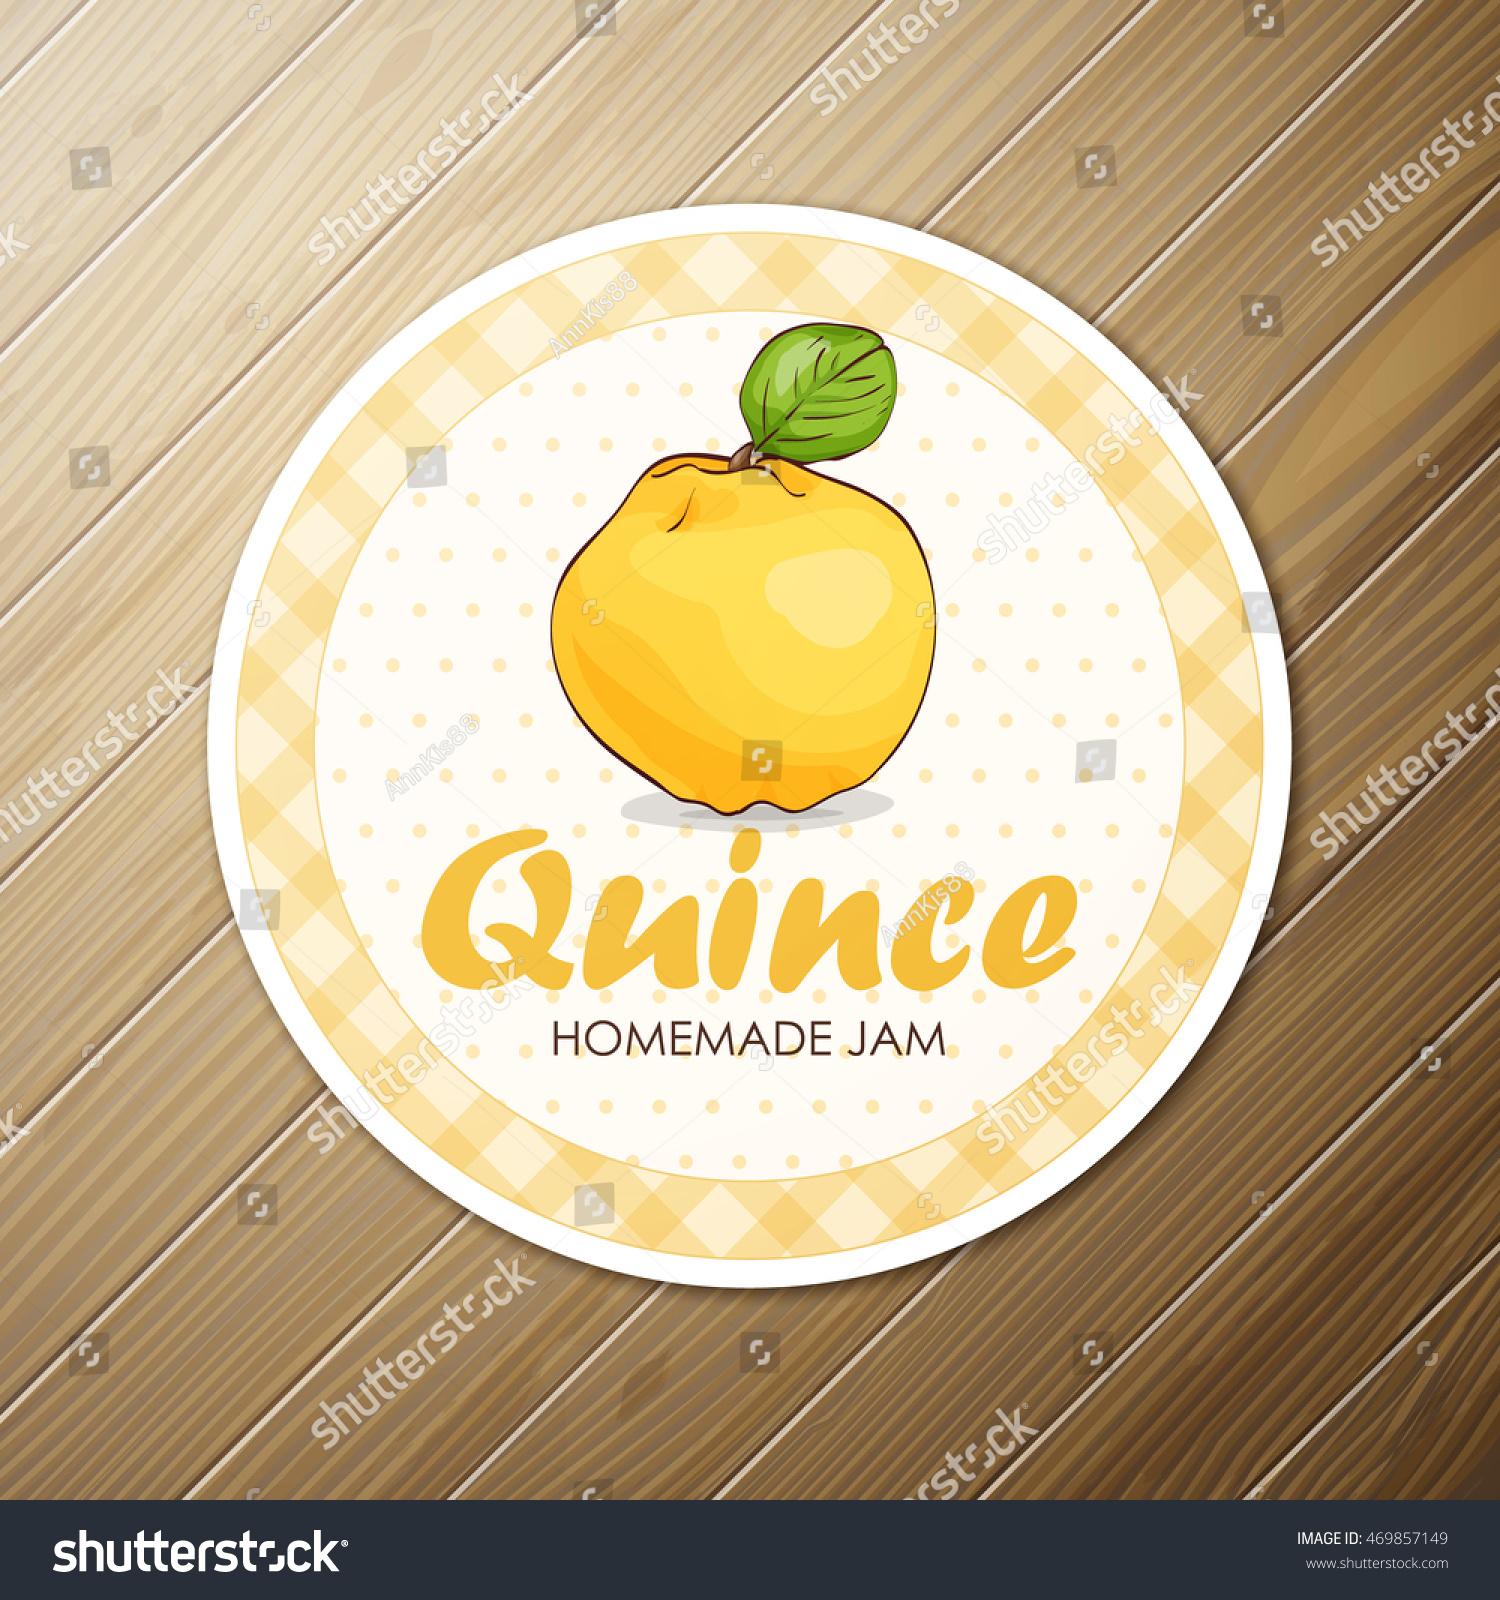 Vector round label quince jam on stock vector 469857149 shutterstock vector round label quince jam on a wooden background biocorpaavc Image collections